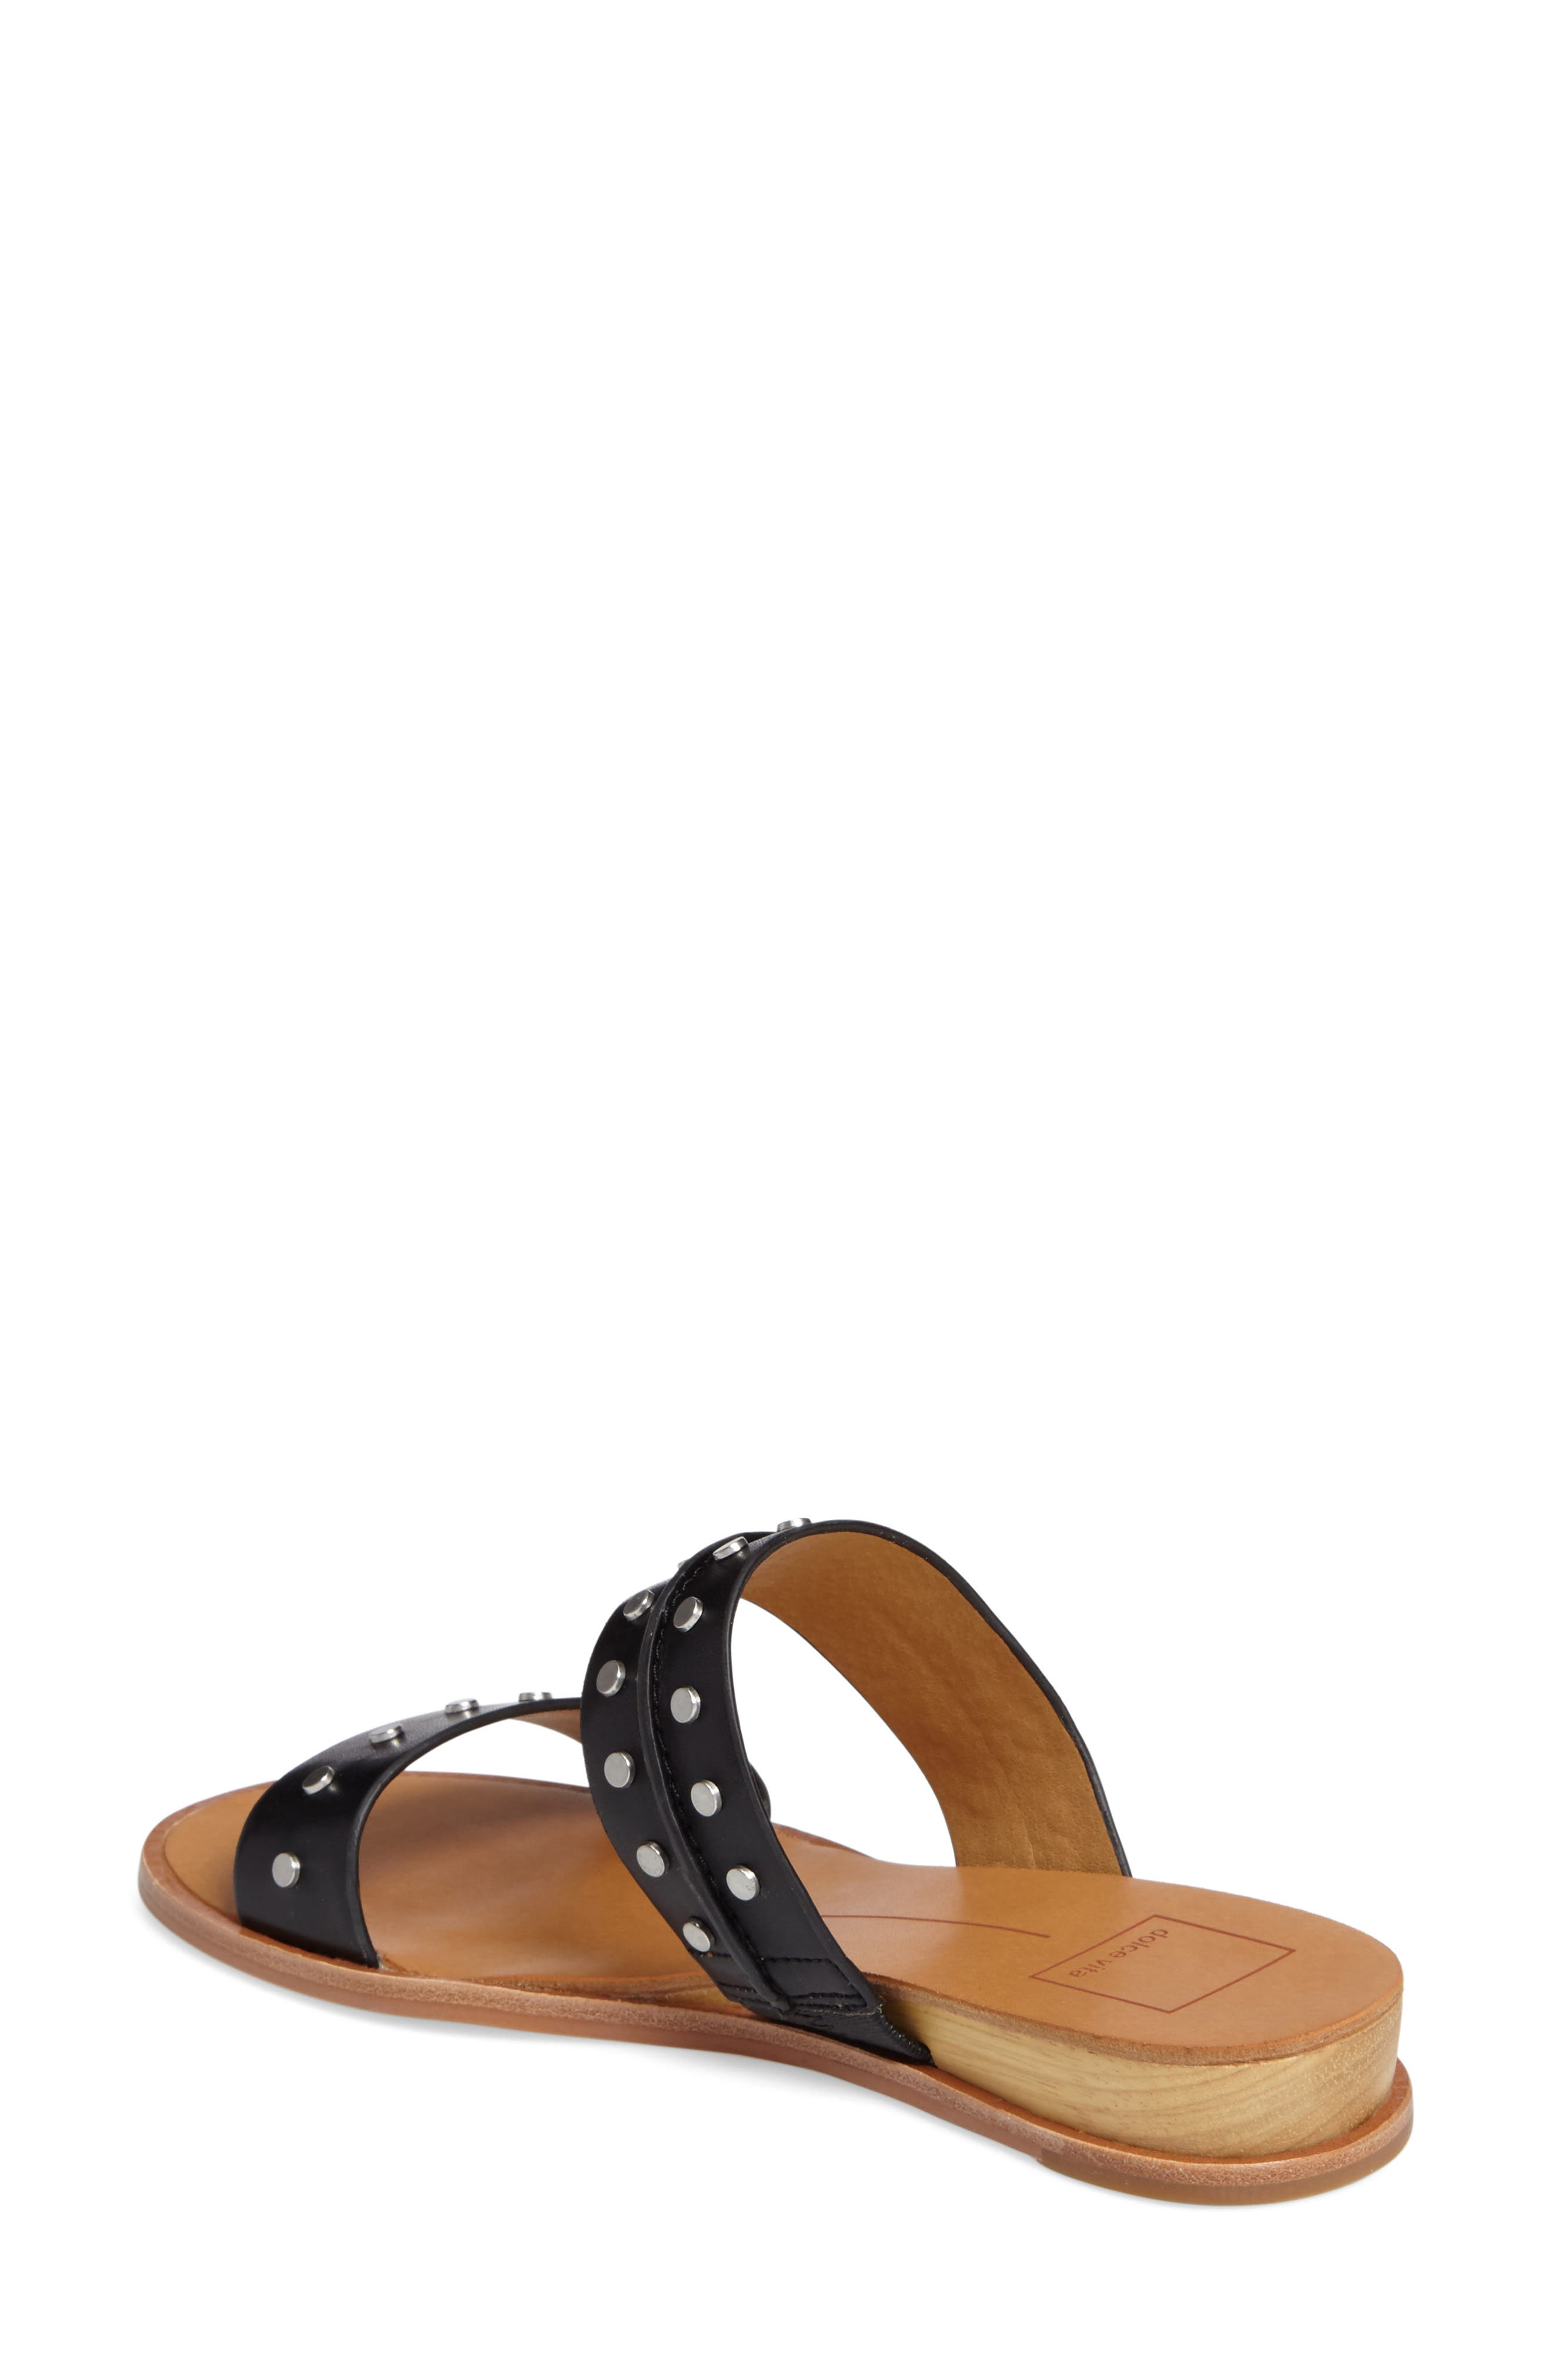 Pacey Studded Wedge Sandal,                             Alternate thumbnail 2, color,                             001